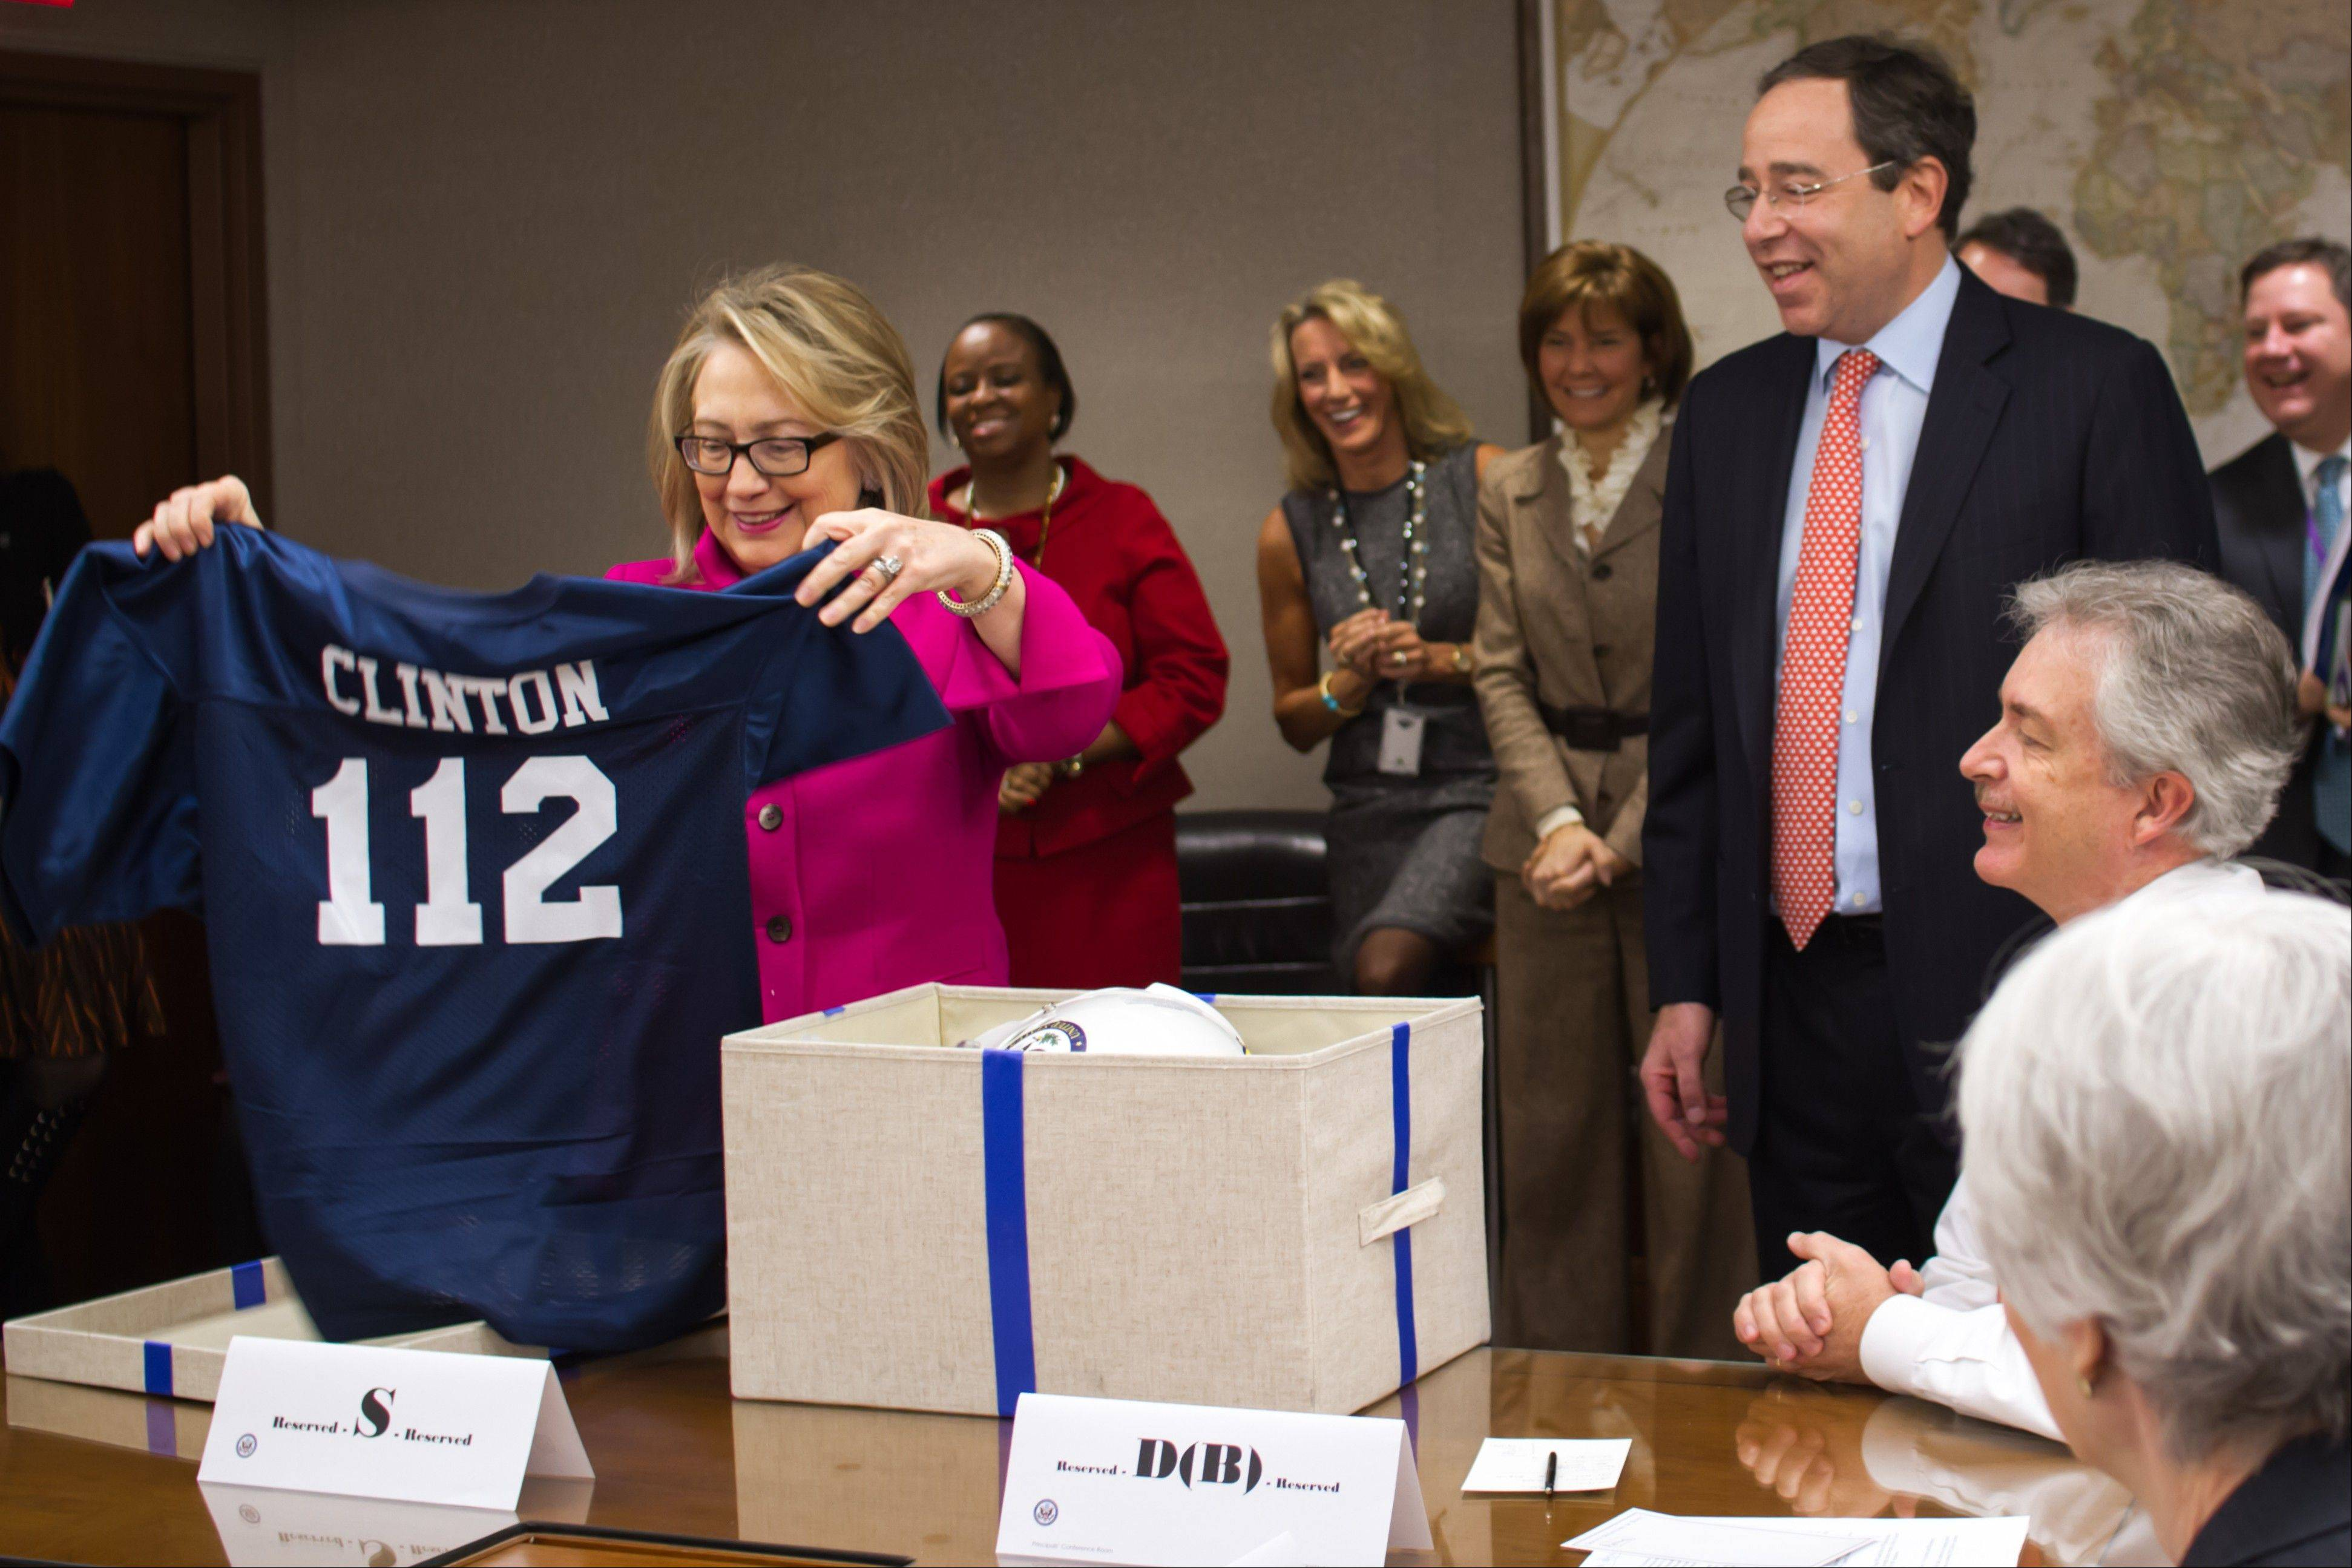 This handout photo provided by the State Department shows Secretary of State Hillary Rodham Clinton holding up a football jersey, number �112� at the State Department in Washington Monday, as she returned to work on Monday after a month-long absence caused first by a stomach virus, then a fall and a concussion and finally a brief hospitalization for a blot clot near her brain. The number 112 refers to the record-breaking number of countries she has visited since becoming secretary of state.